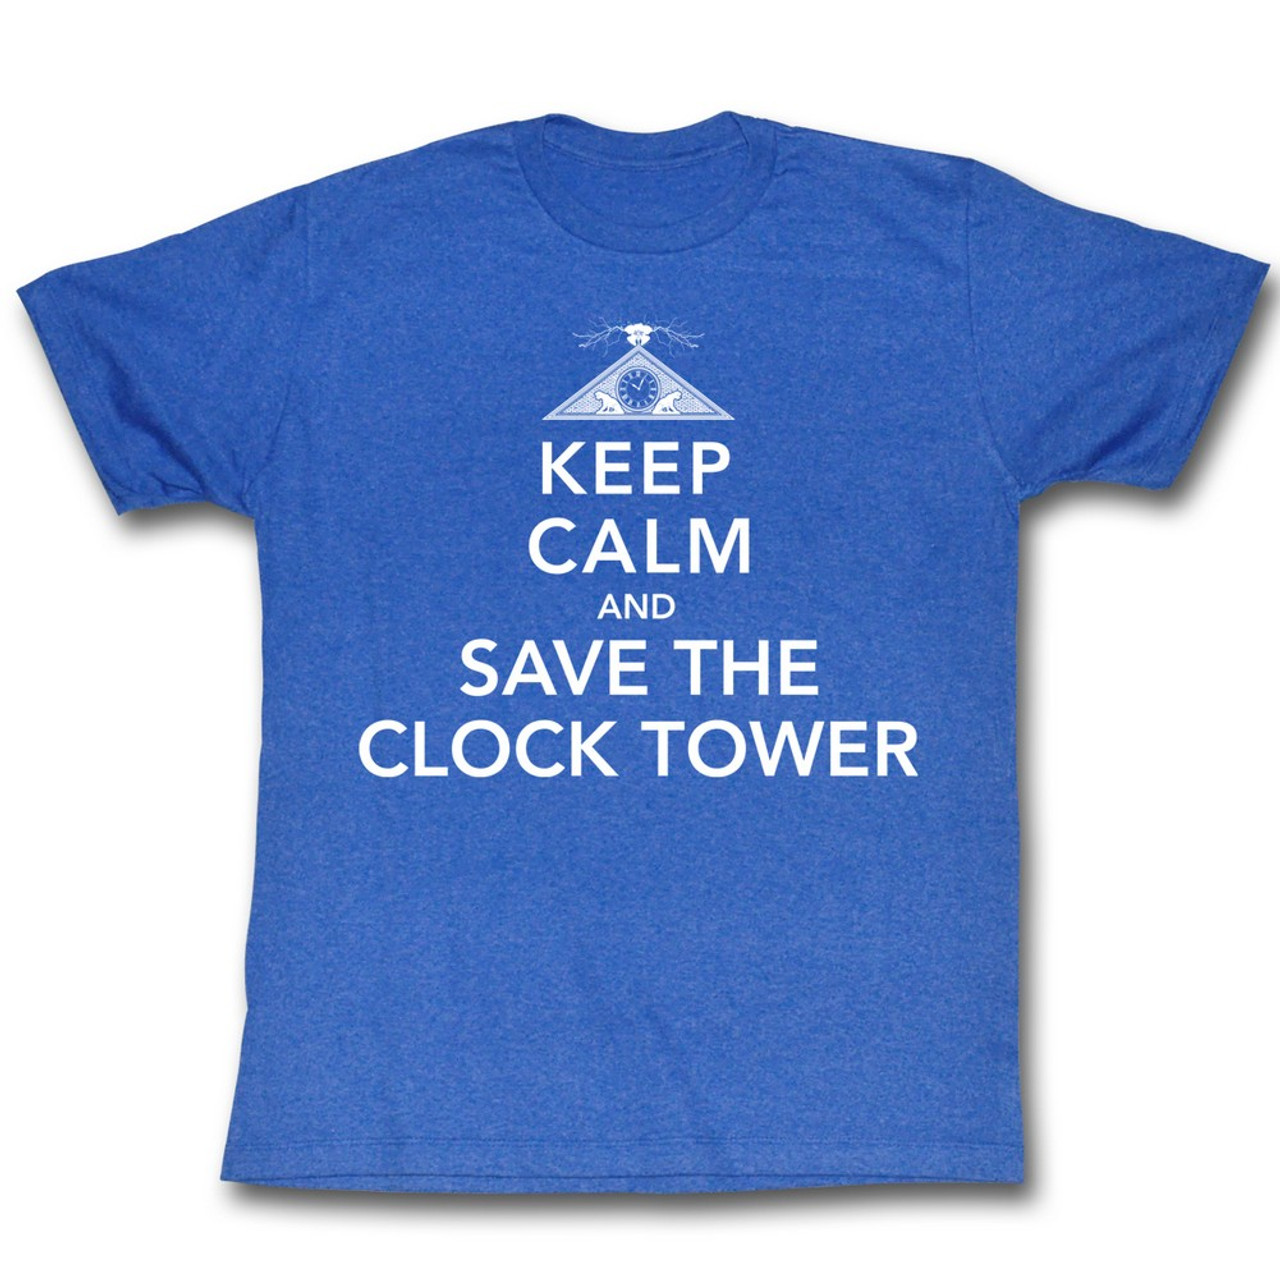 S-XXL Officially Licensed Back To The Future Save The Clock Tower Sweatshirt